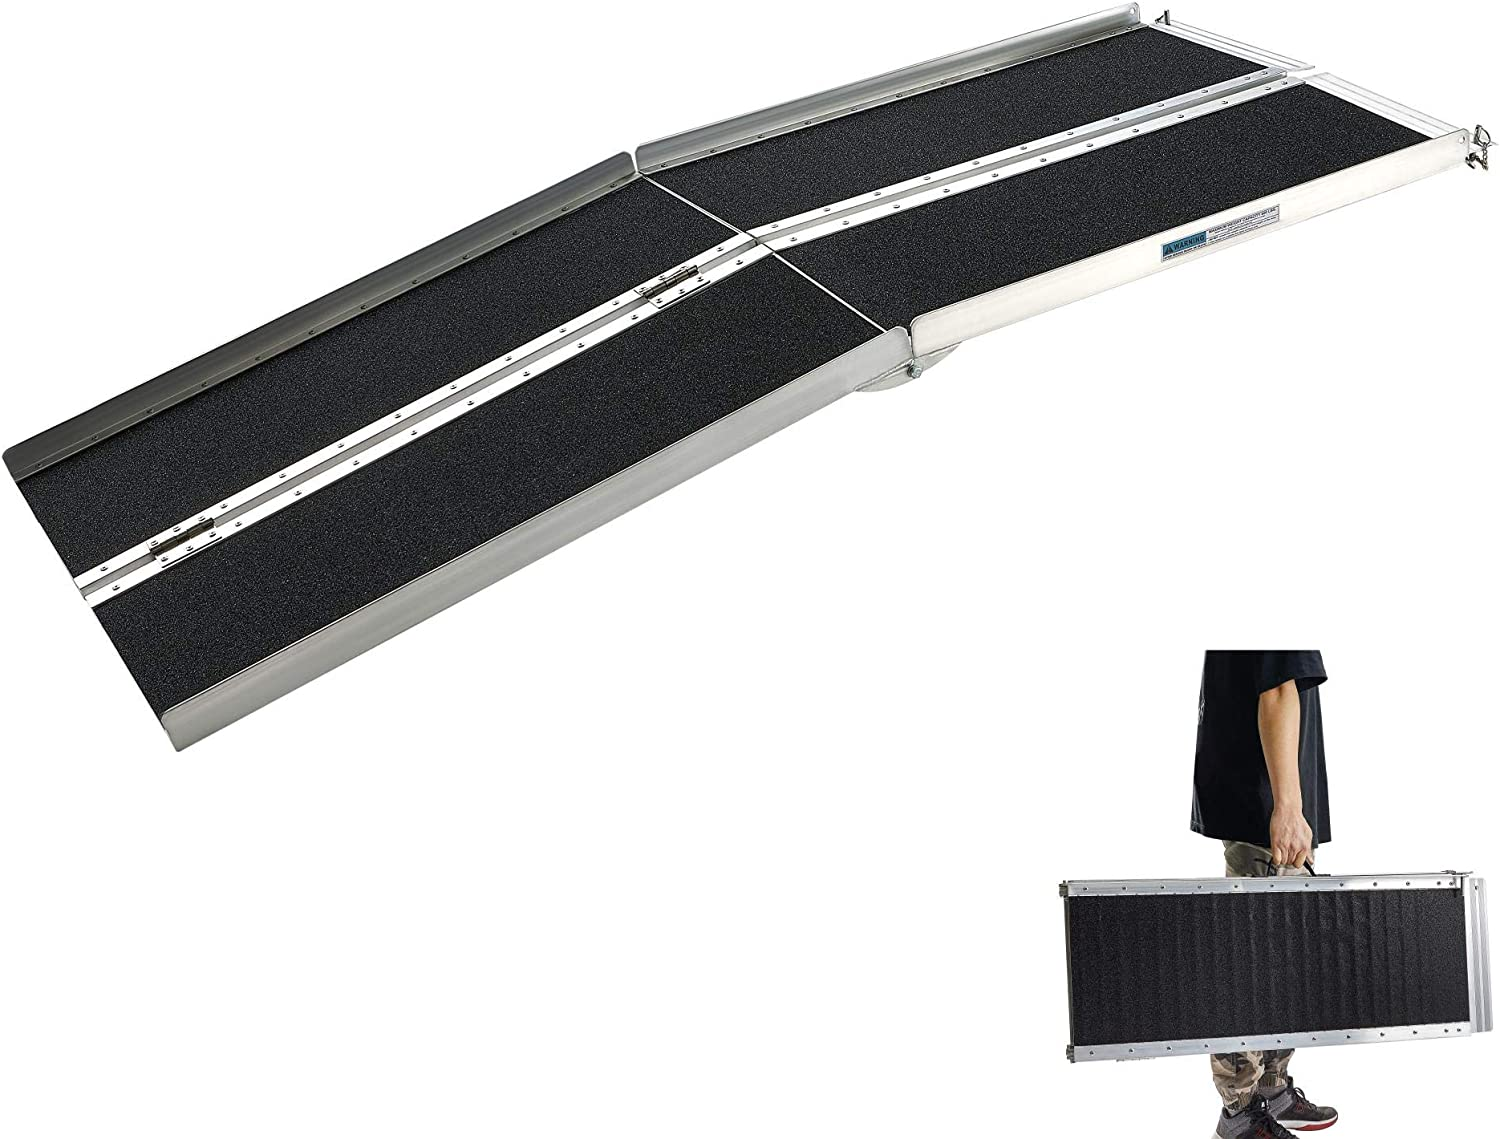 Wheelchair Ramps for Steps, gardhom 6FT Extra Wide 31.3' Folding Portable Traction Antiskid Aluminum Loading Ramp for Scooters Car Doorways